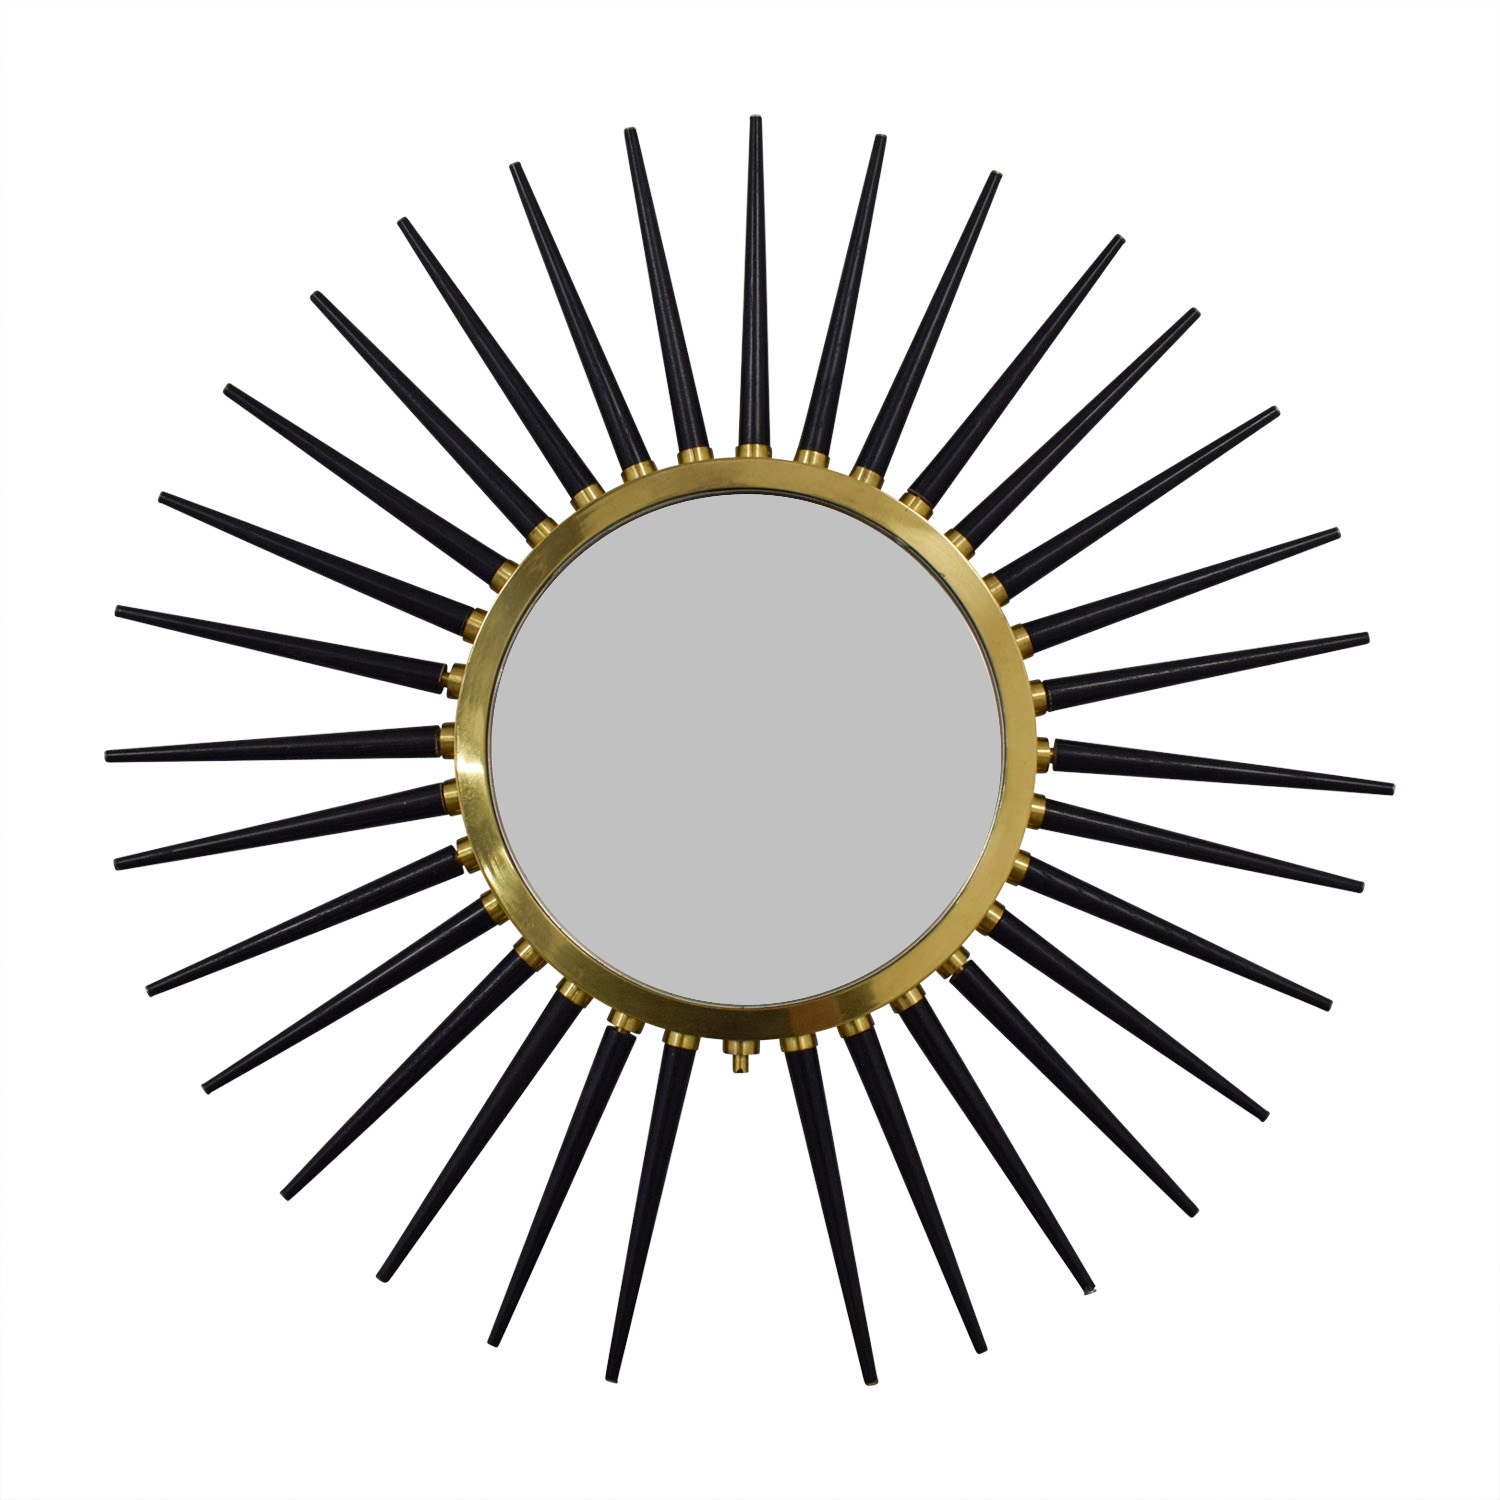 Jonathan Adler Jonathan Adler Sunburst Mirror on sale